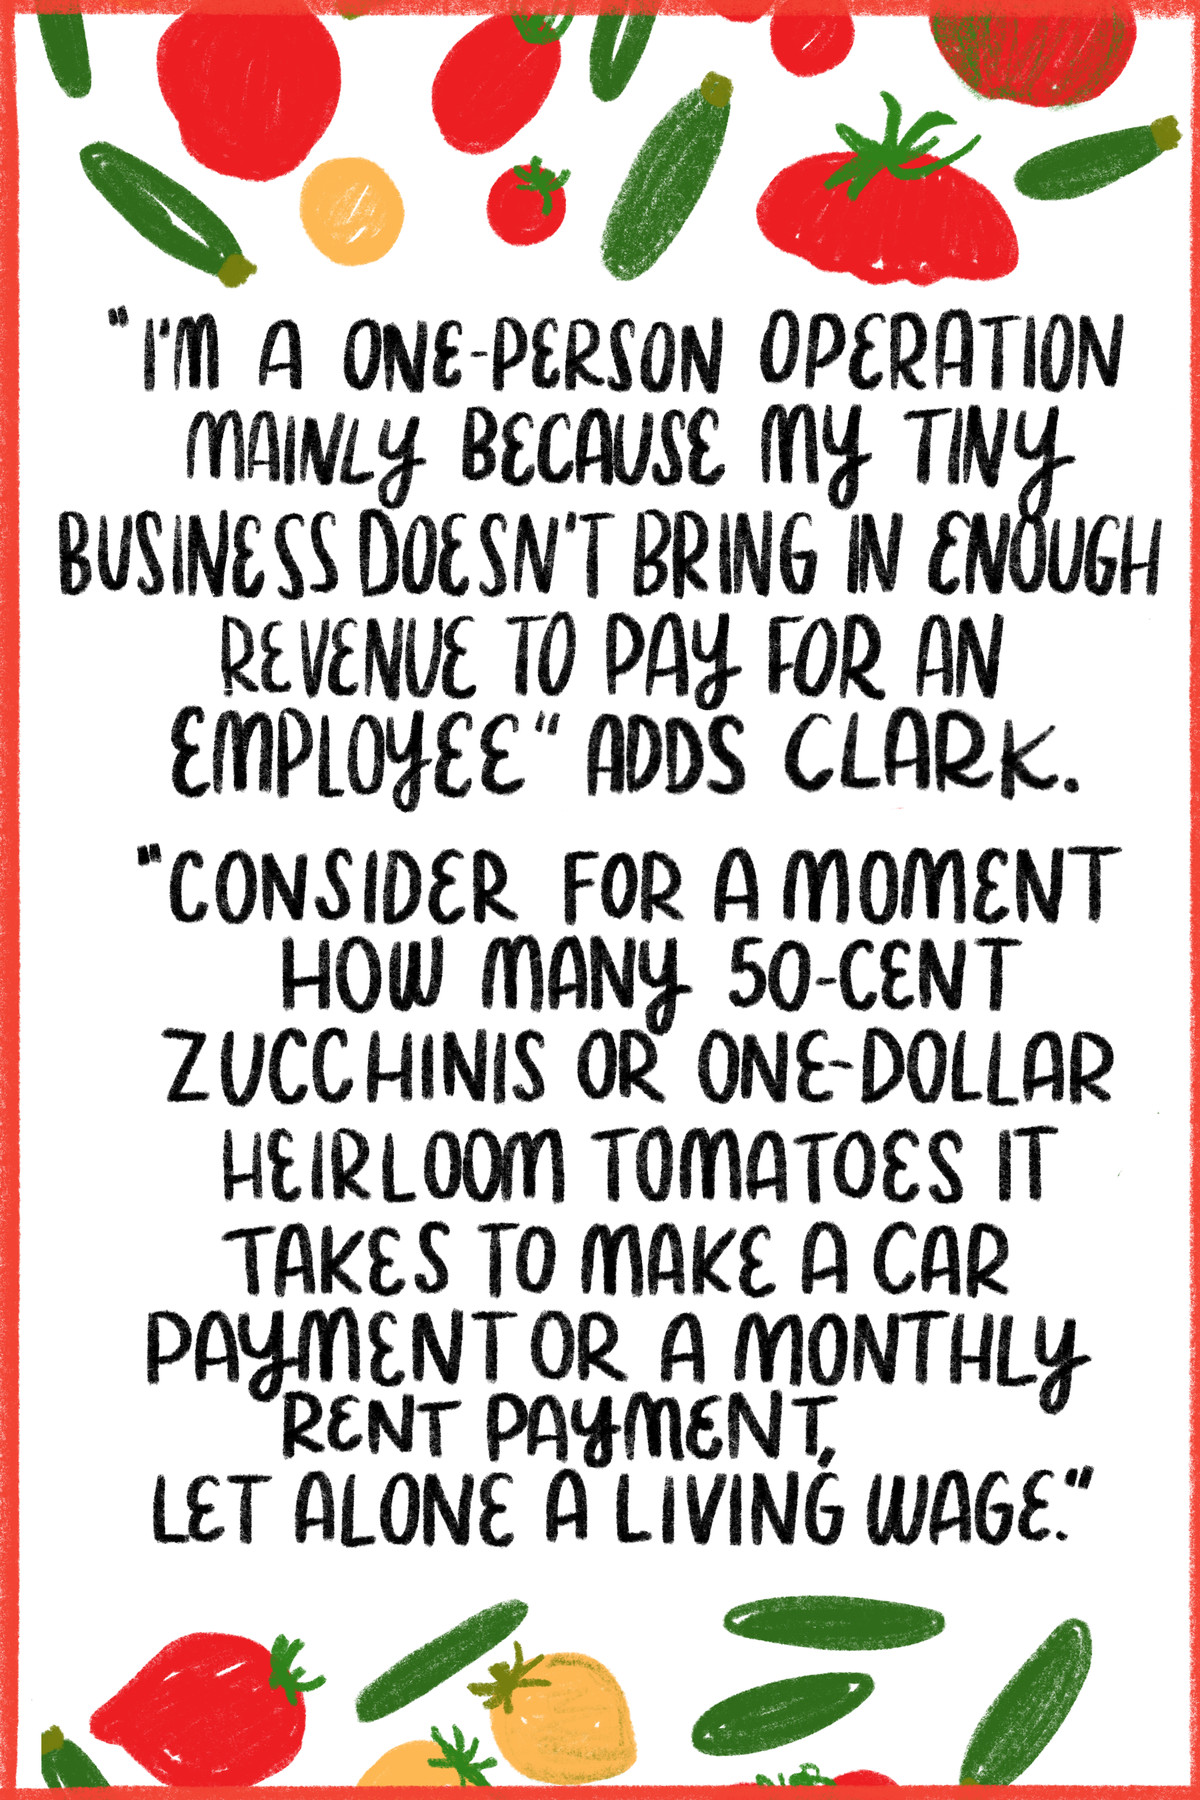 """""""I'm a one-person operation mainly because my business doesn't bring in enough revenue to pay for an employee,"""" adds Clark. """"Consider for a moment how many 50-cent zucchinis or one-dollar heirloom tomatoes it takes to make a car payment or a monthly rent payment, let alone a living wage."""" [Surrounding the quote are illustrations of zucchini and tomatoes.]"""